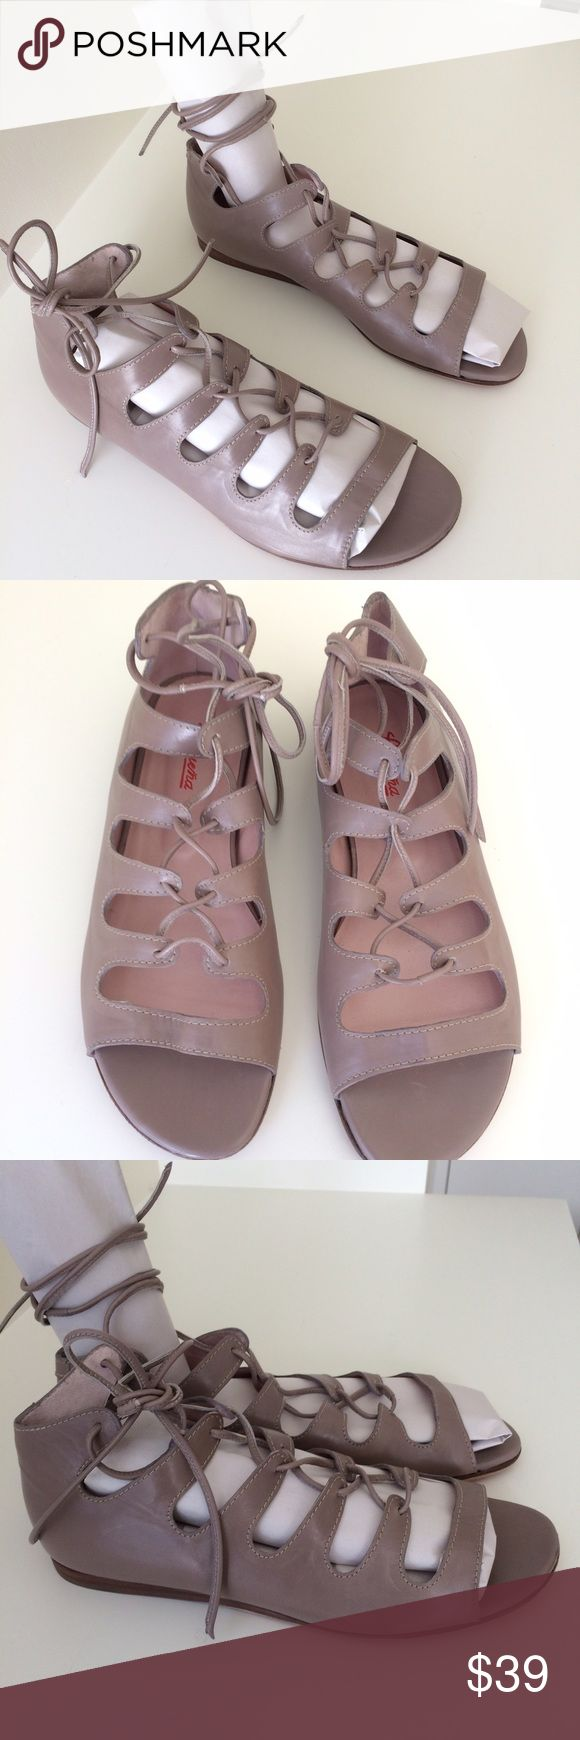 Gladiator flats, made in Spain, NWOT Gladiator flats, made in Spain, NWOT, never worn. Taupe color. Luruena Shoes Sandals